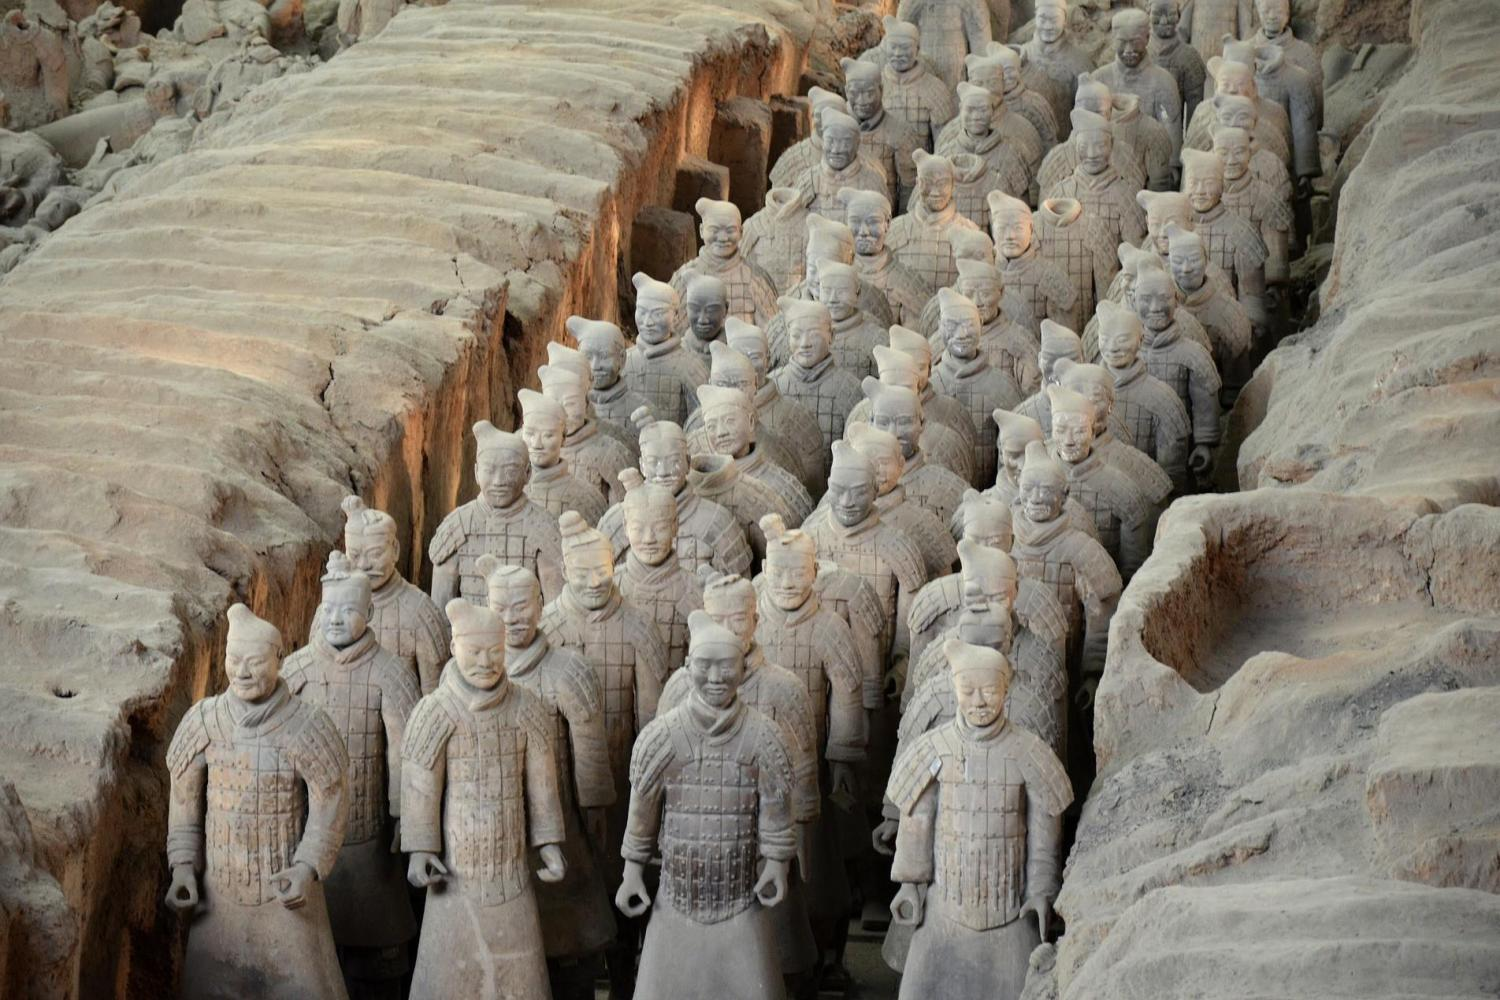 Experience the Terra Cotta Warriors of Xi'an